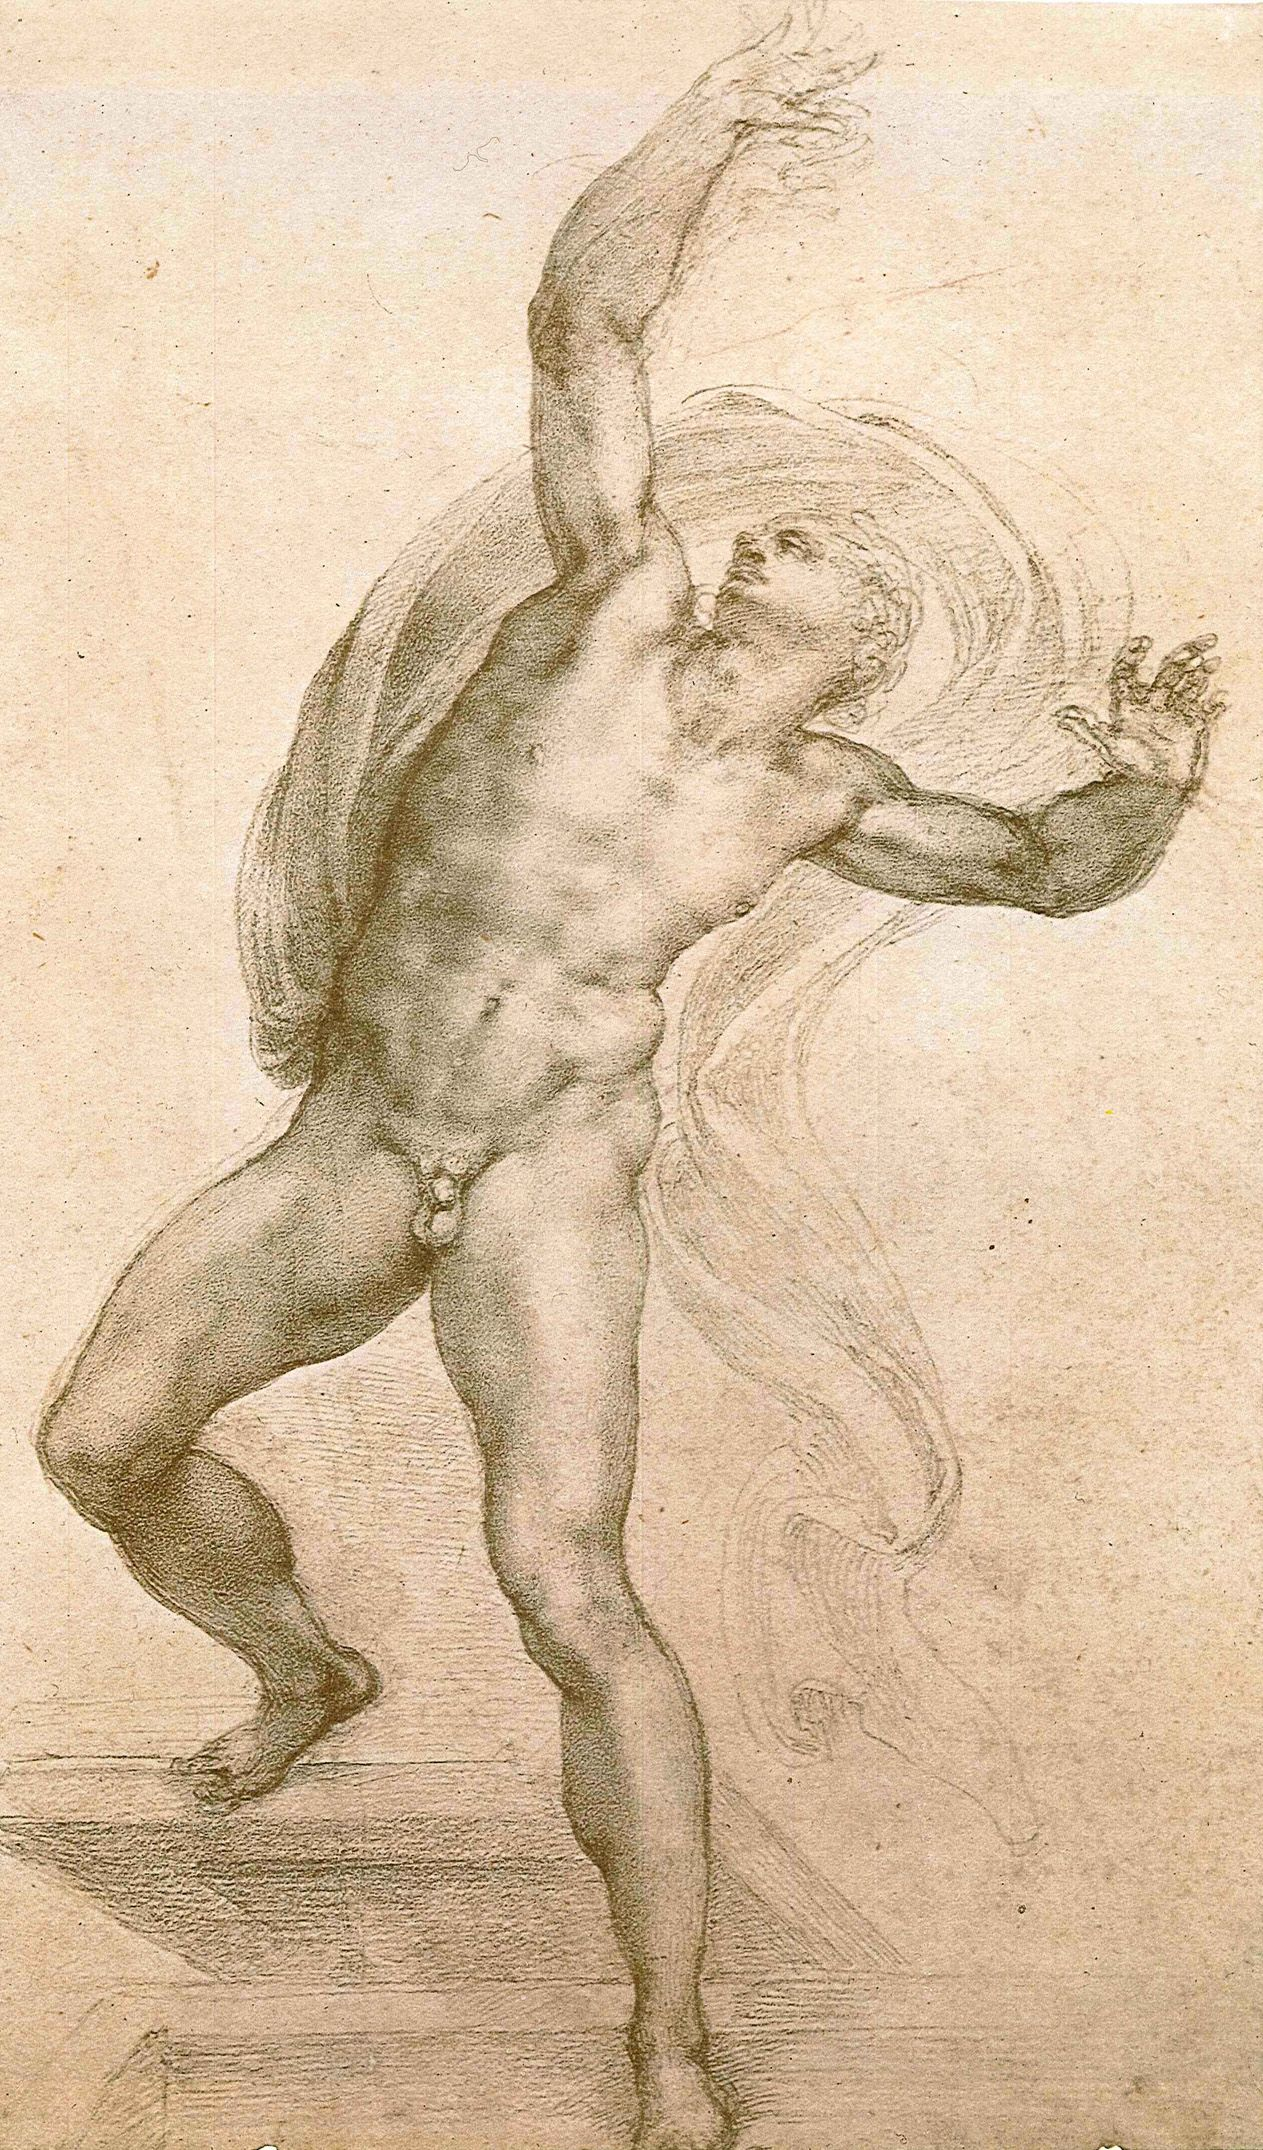 Michelangelo's Drawings for Apostle Statues for the Cathedral of ...